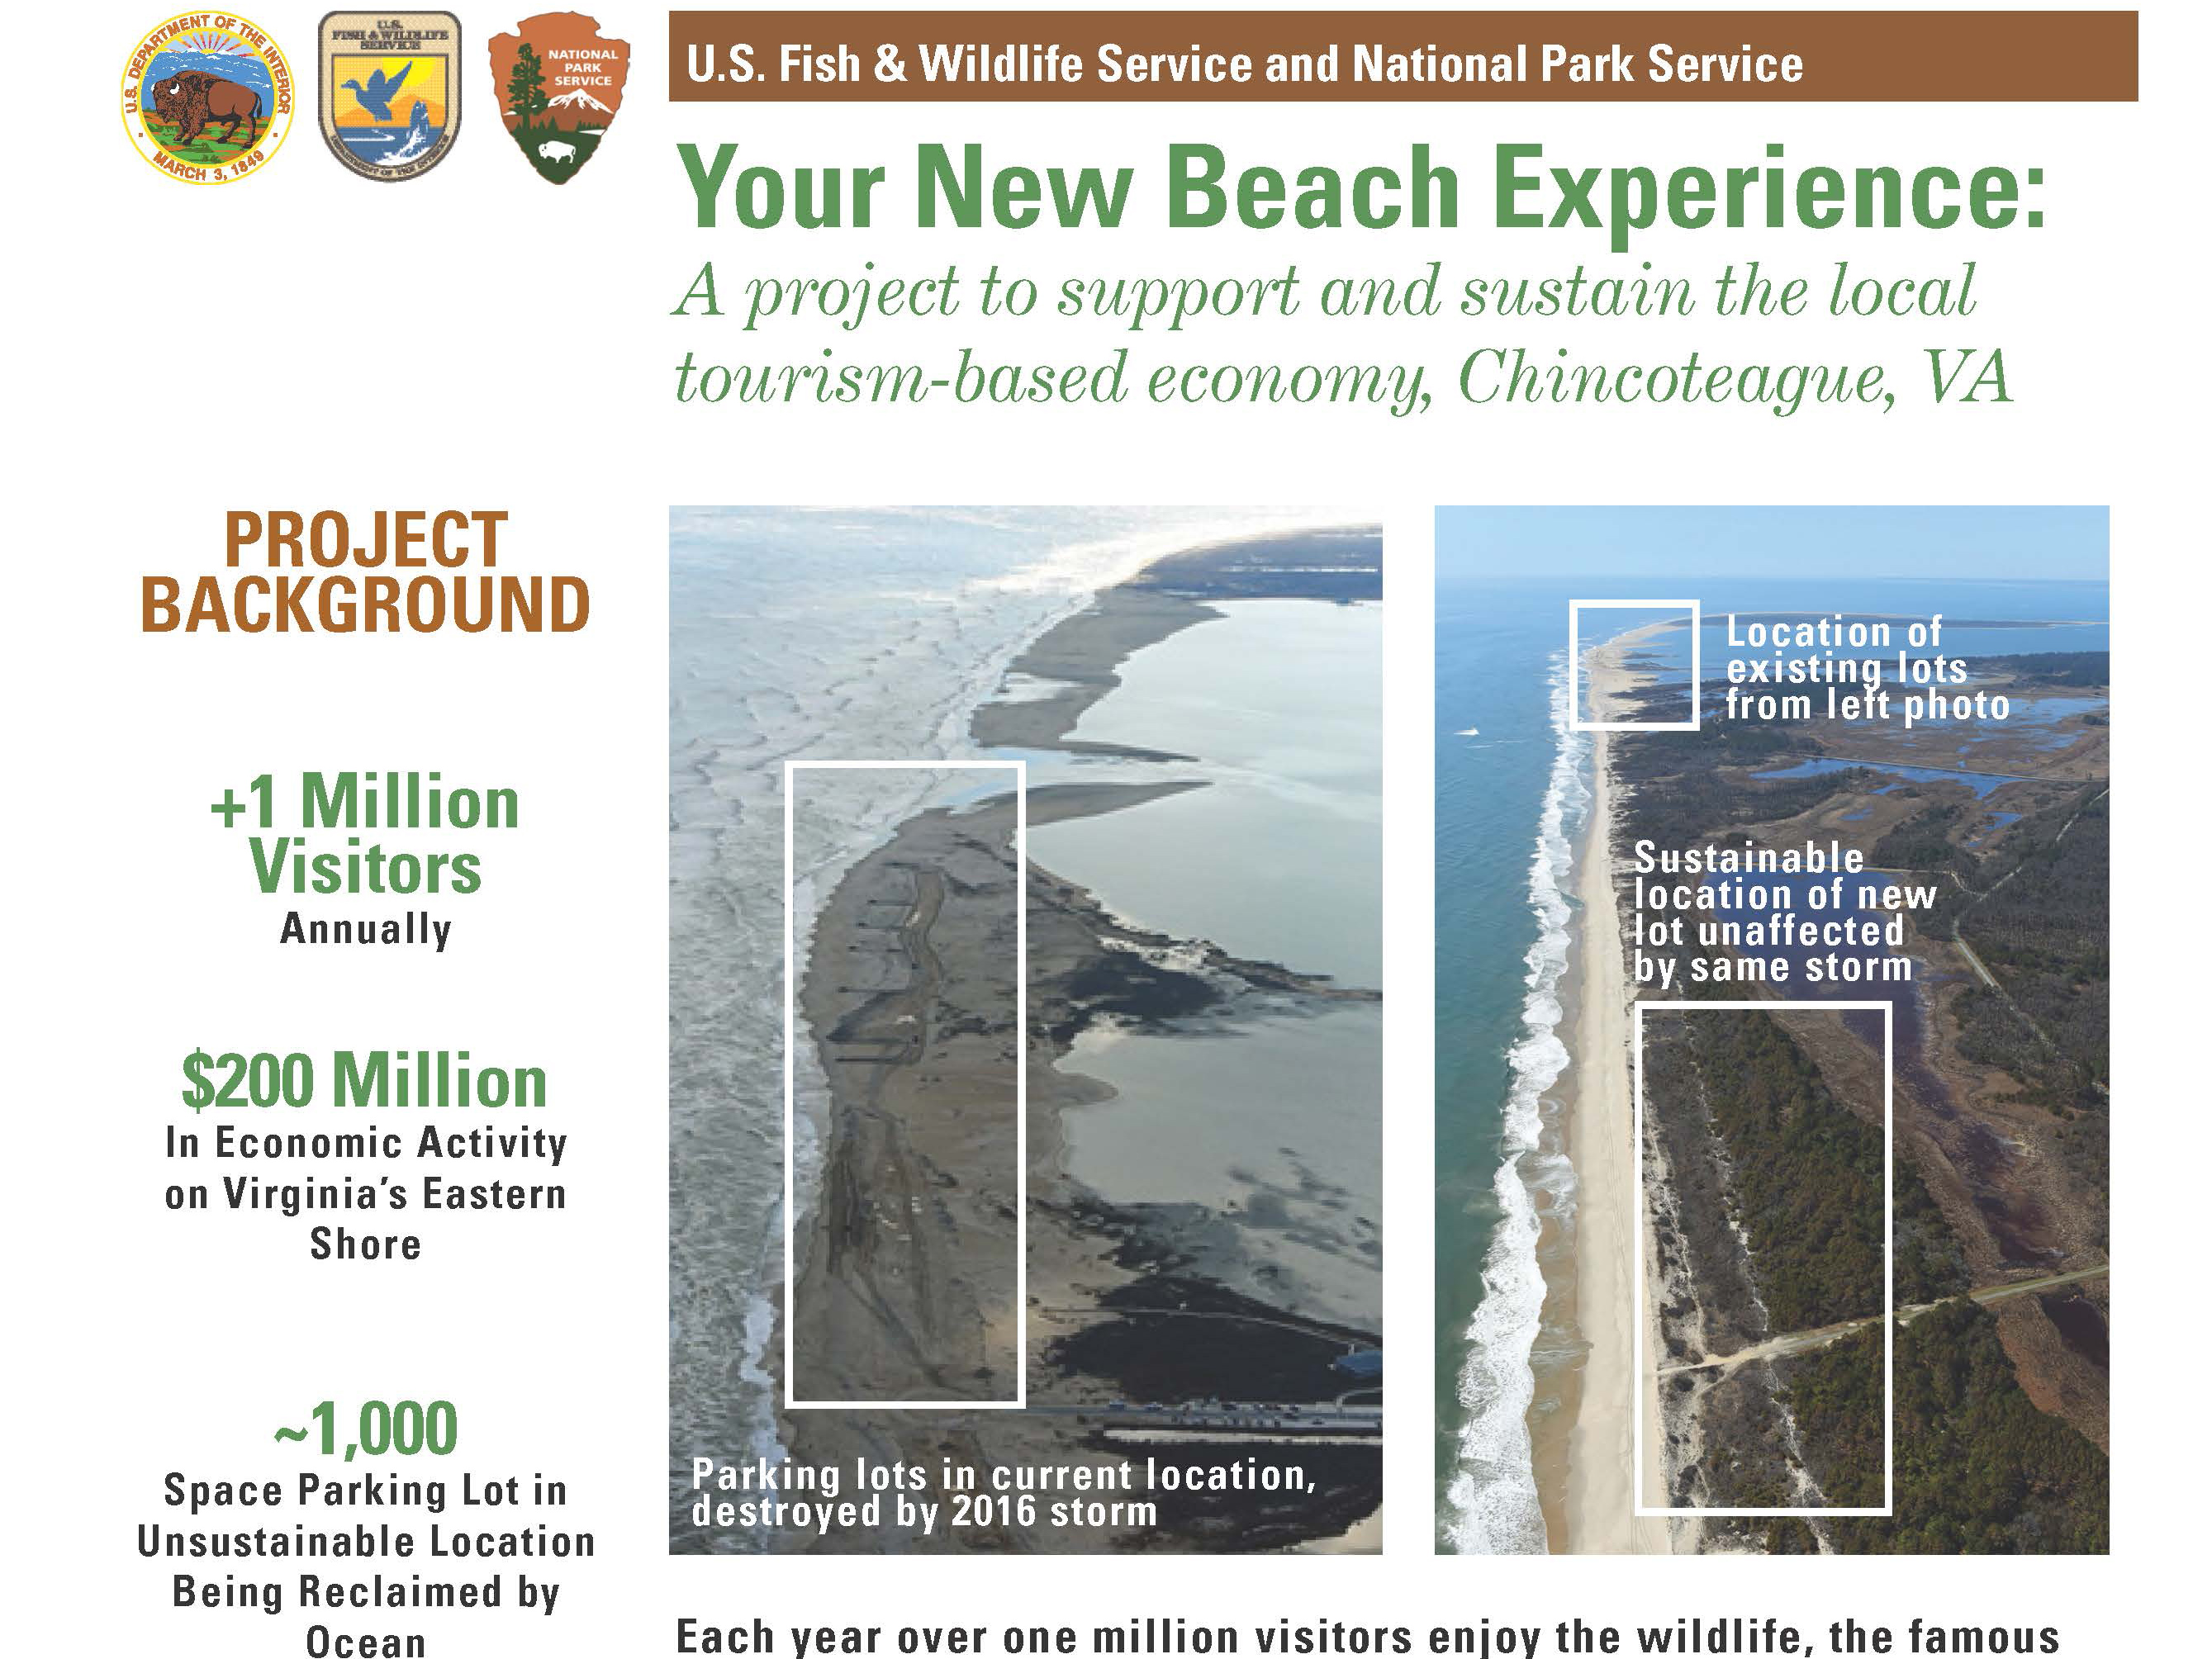 newsletter about future changes to the recreational beach in the Virginia District